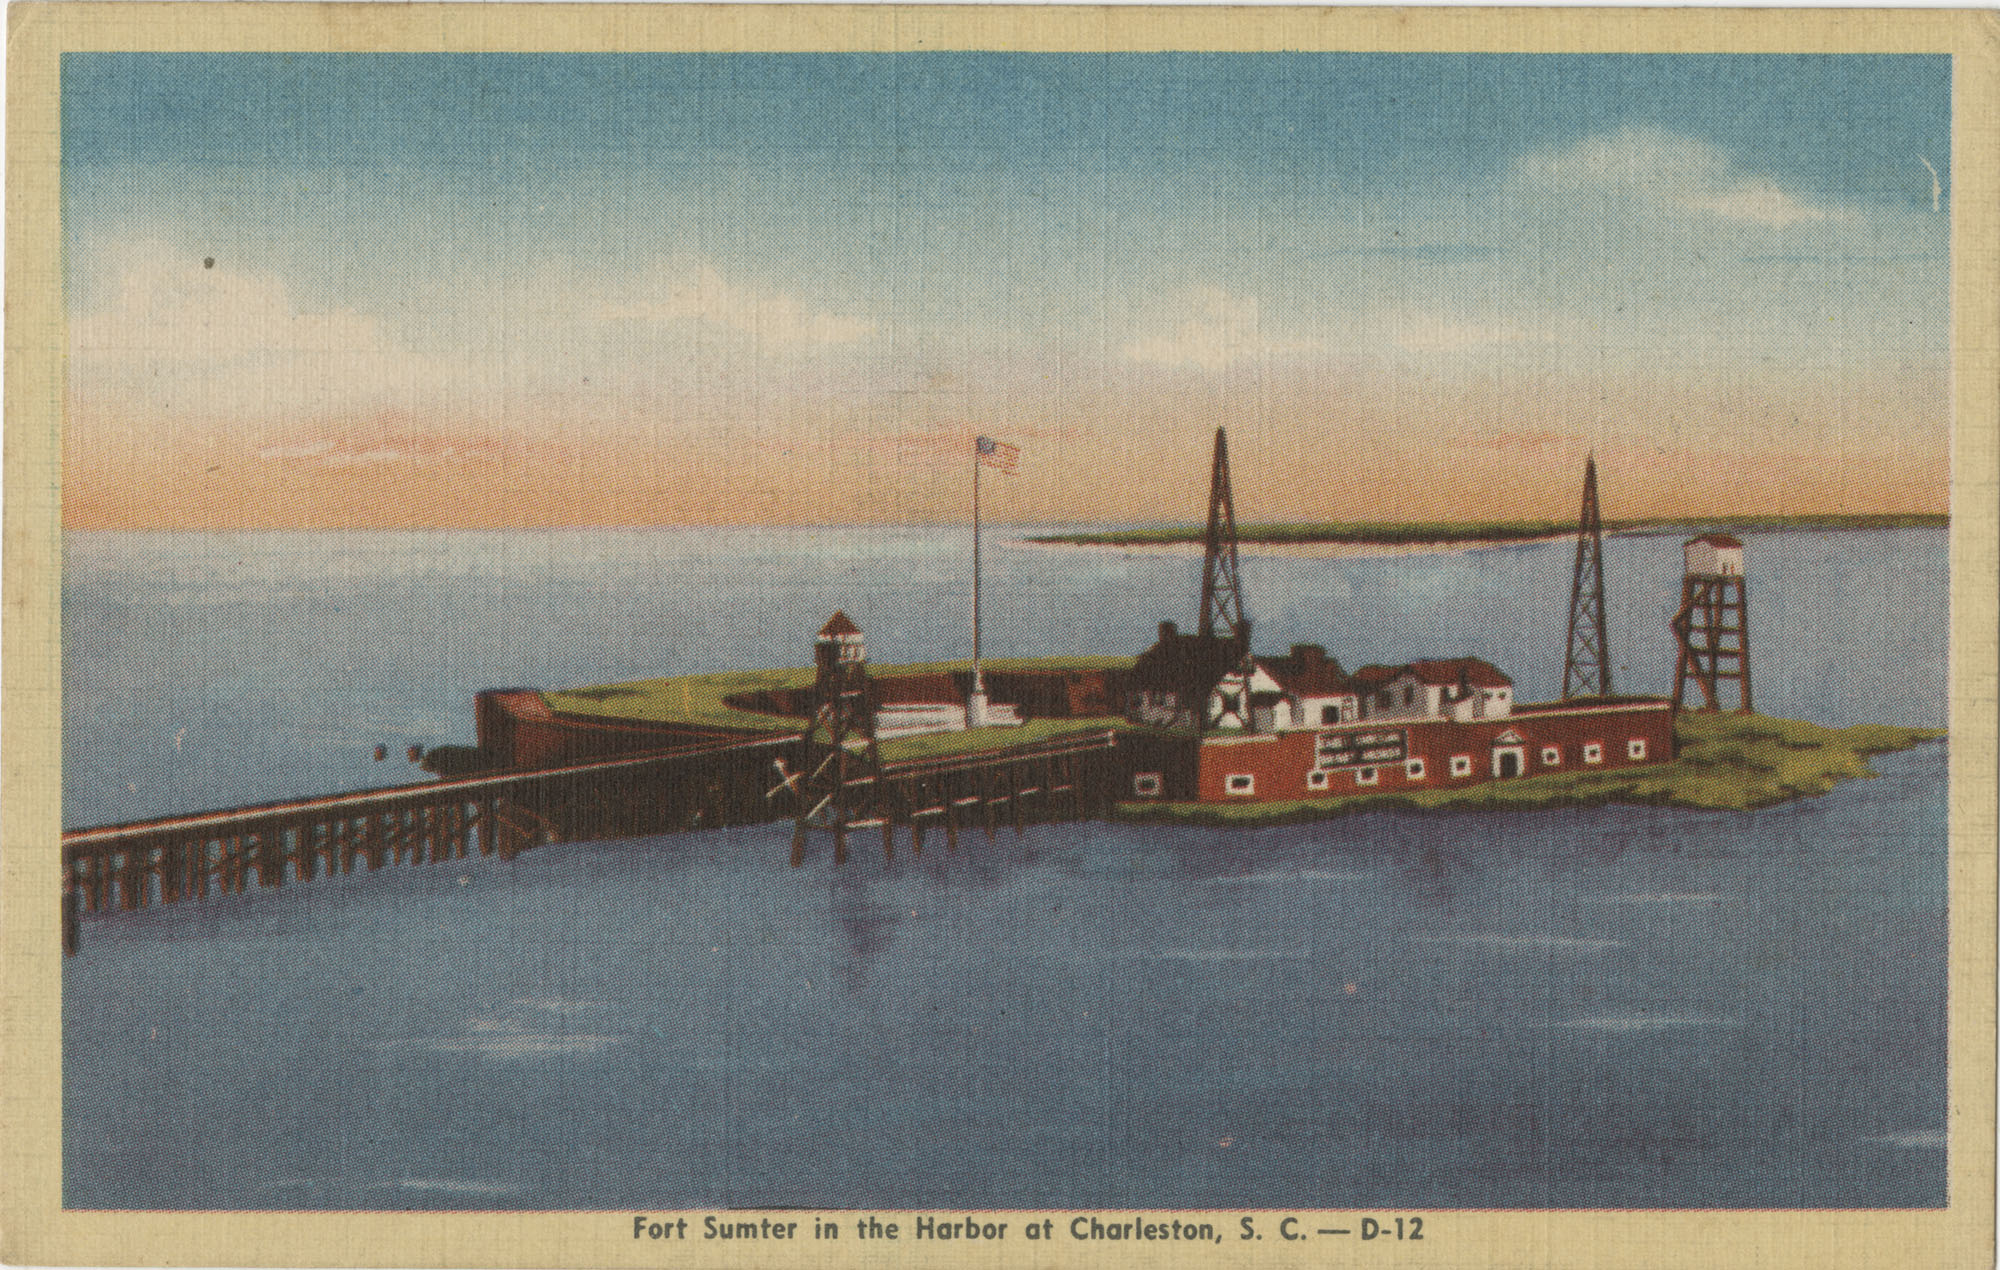 Fort Sumter in the Harbor at Charleston, S.C.